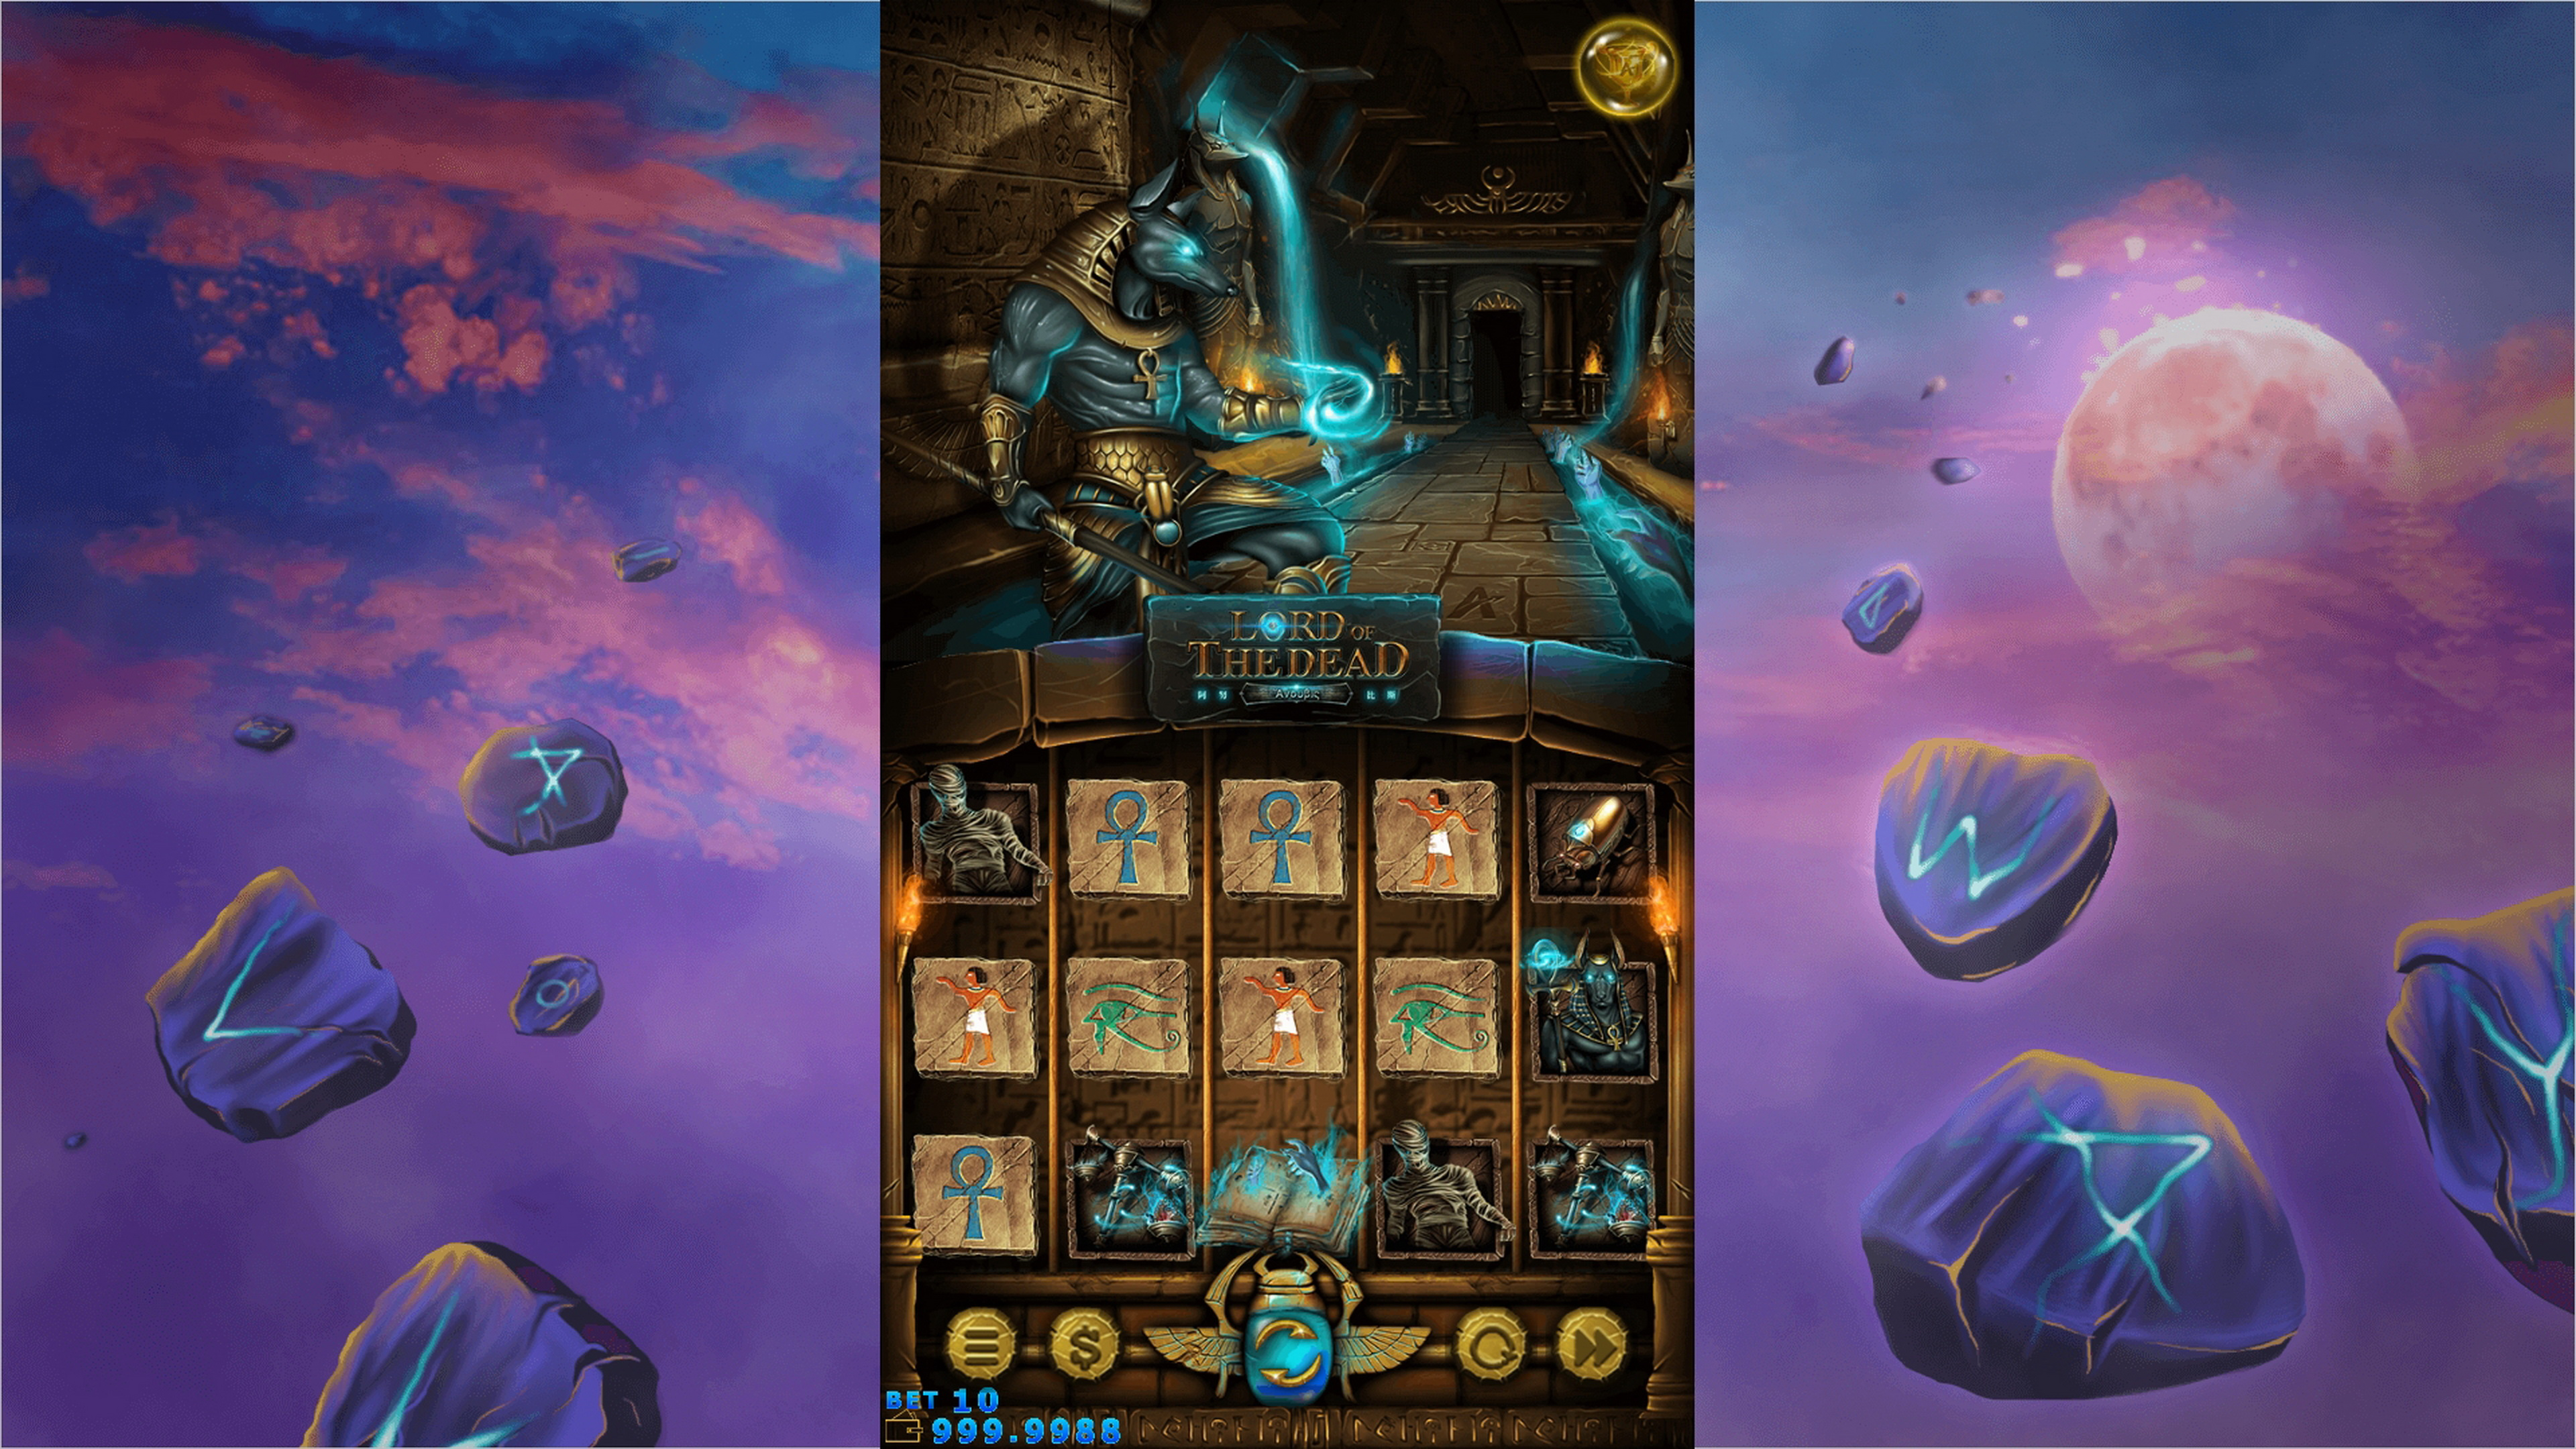 Reels in Lord of the Dead Slot Game by AllWaySpin